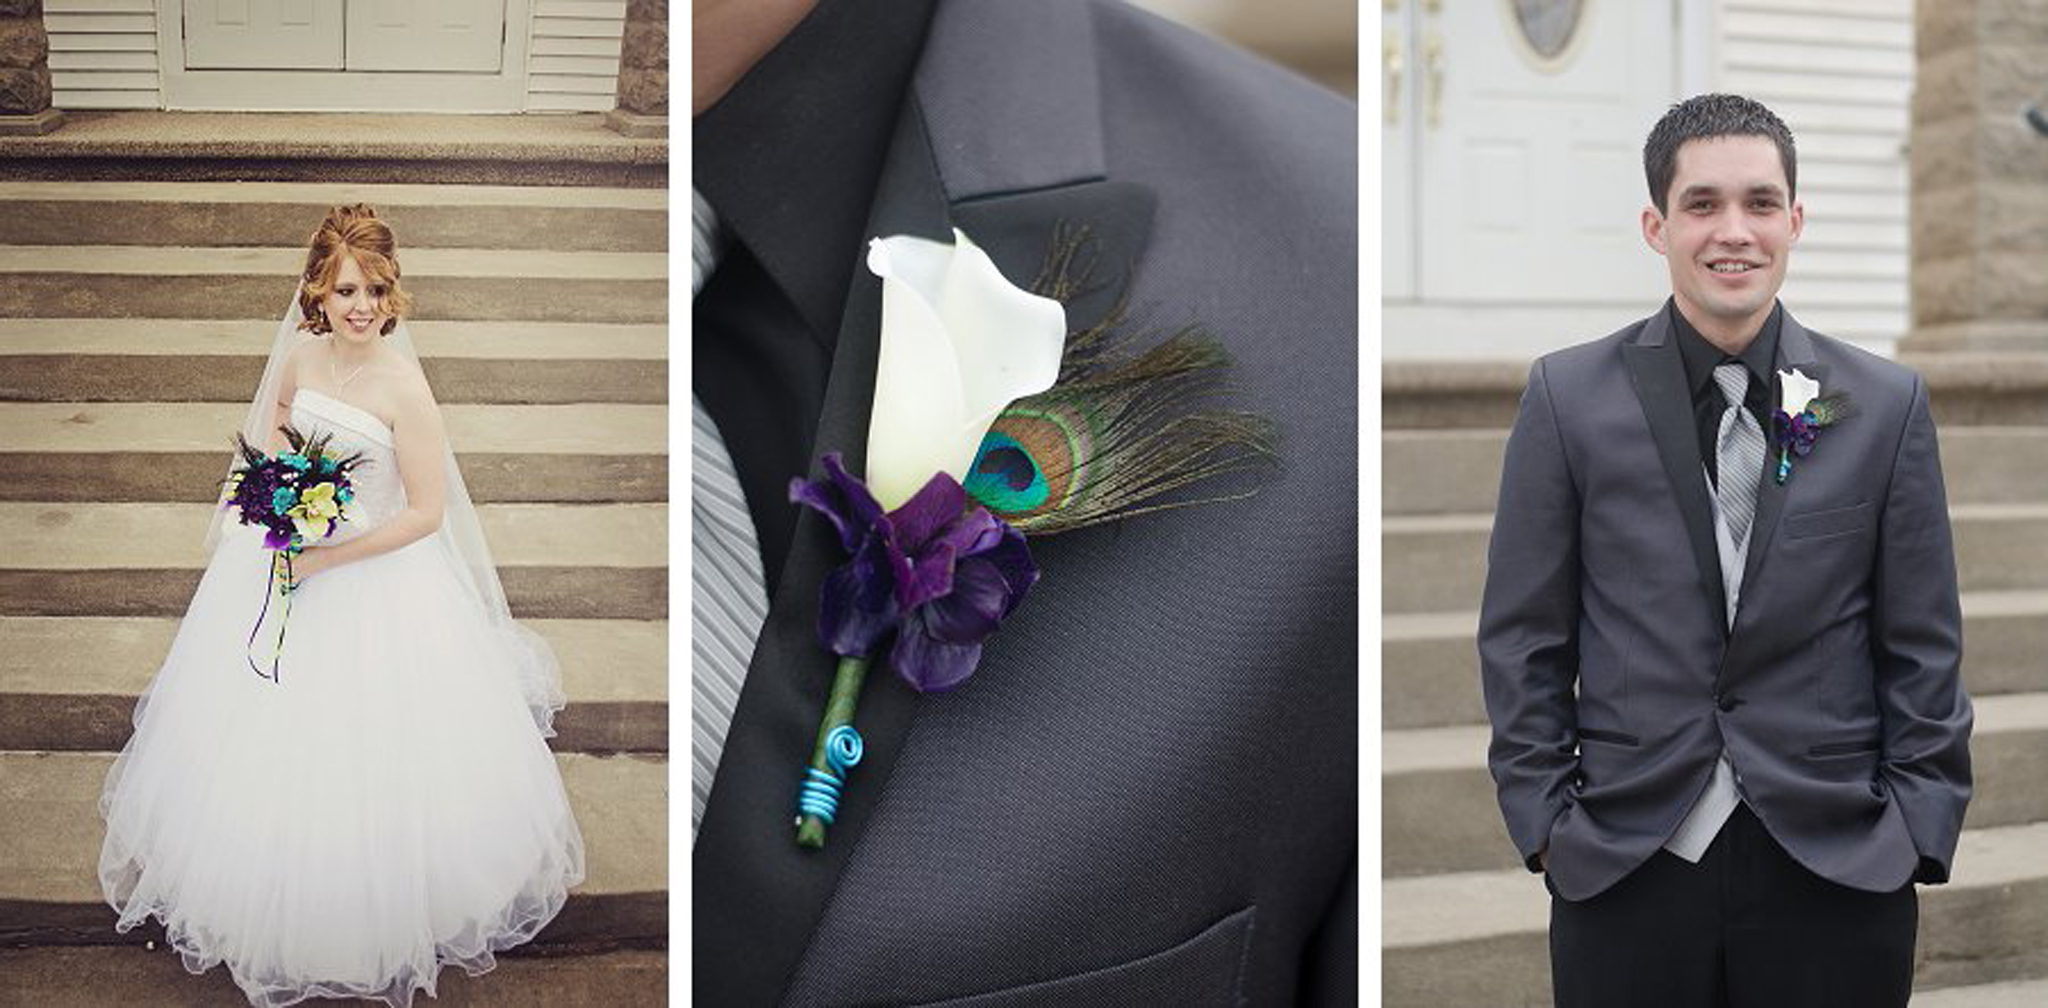 Groom details Wedding Photo by Johnson County Wedding Photographer Brittany Tarchala